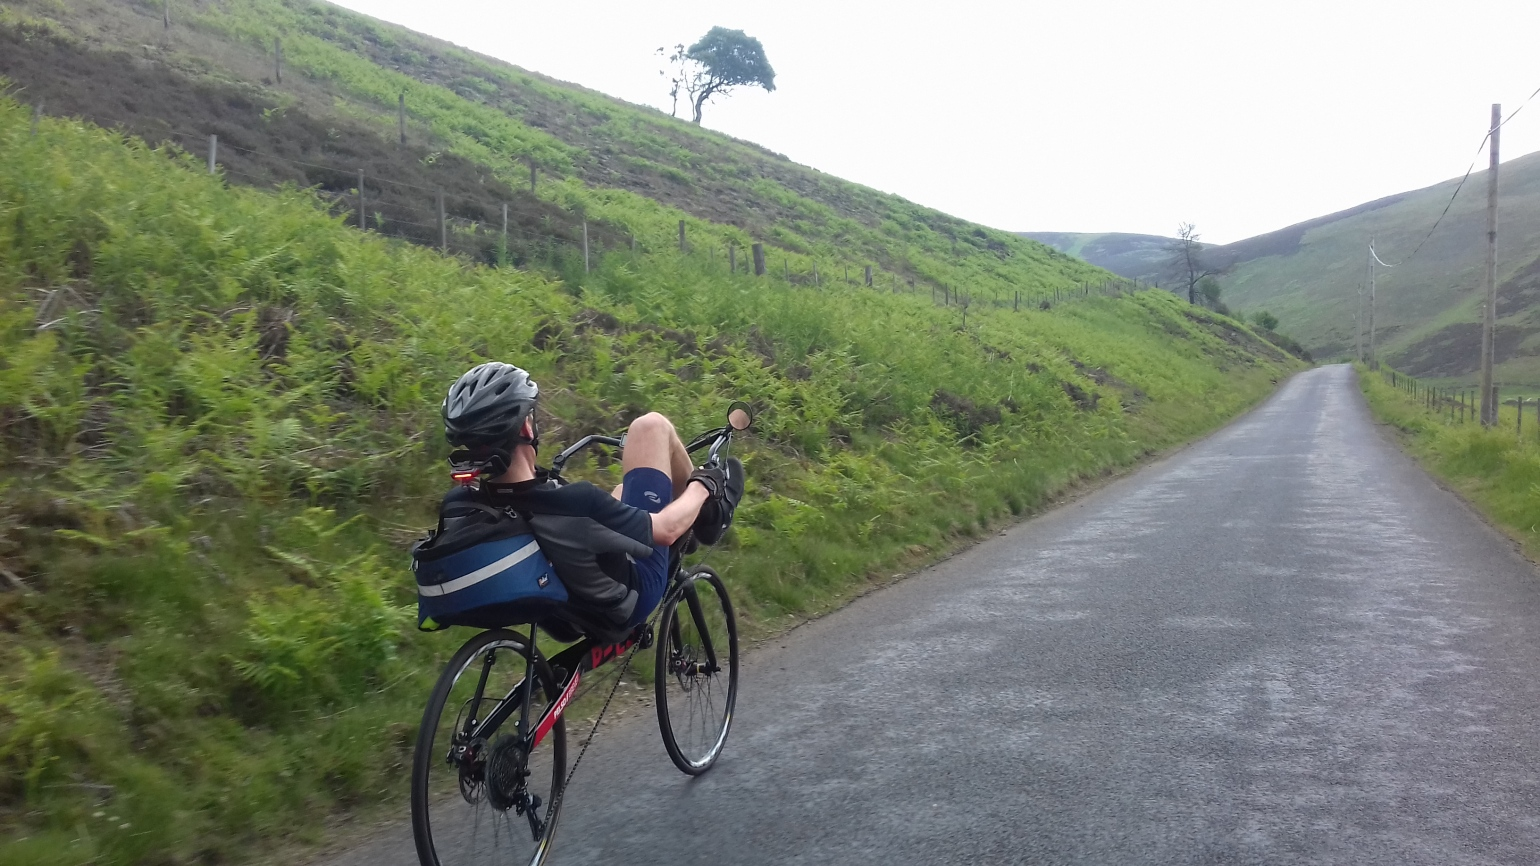 Riding down from the granites